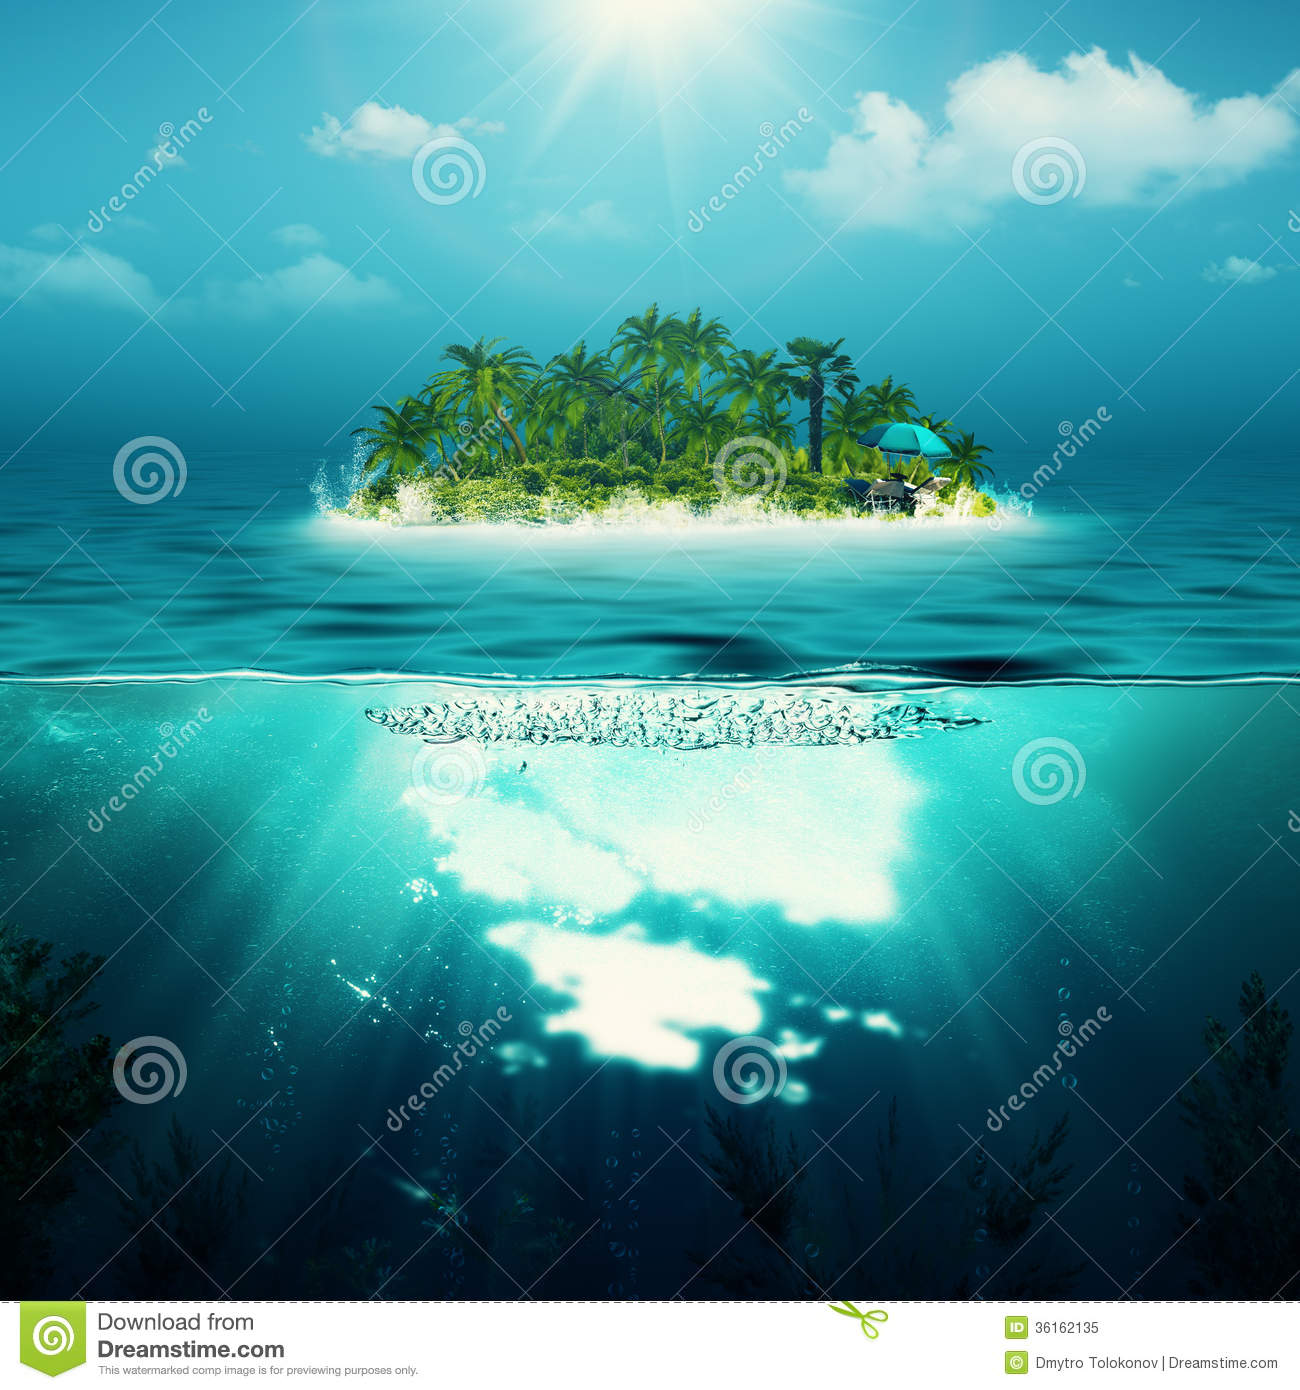 Alone Island In The Ocean Royalty Free Stock Photo